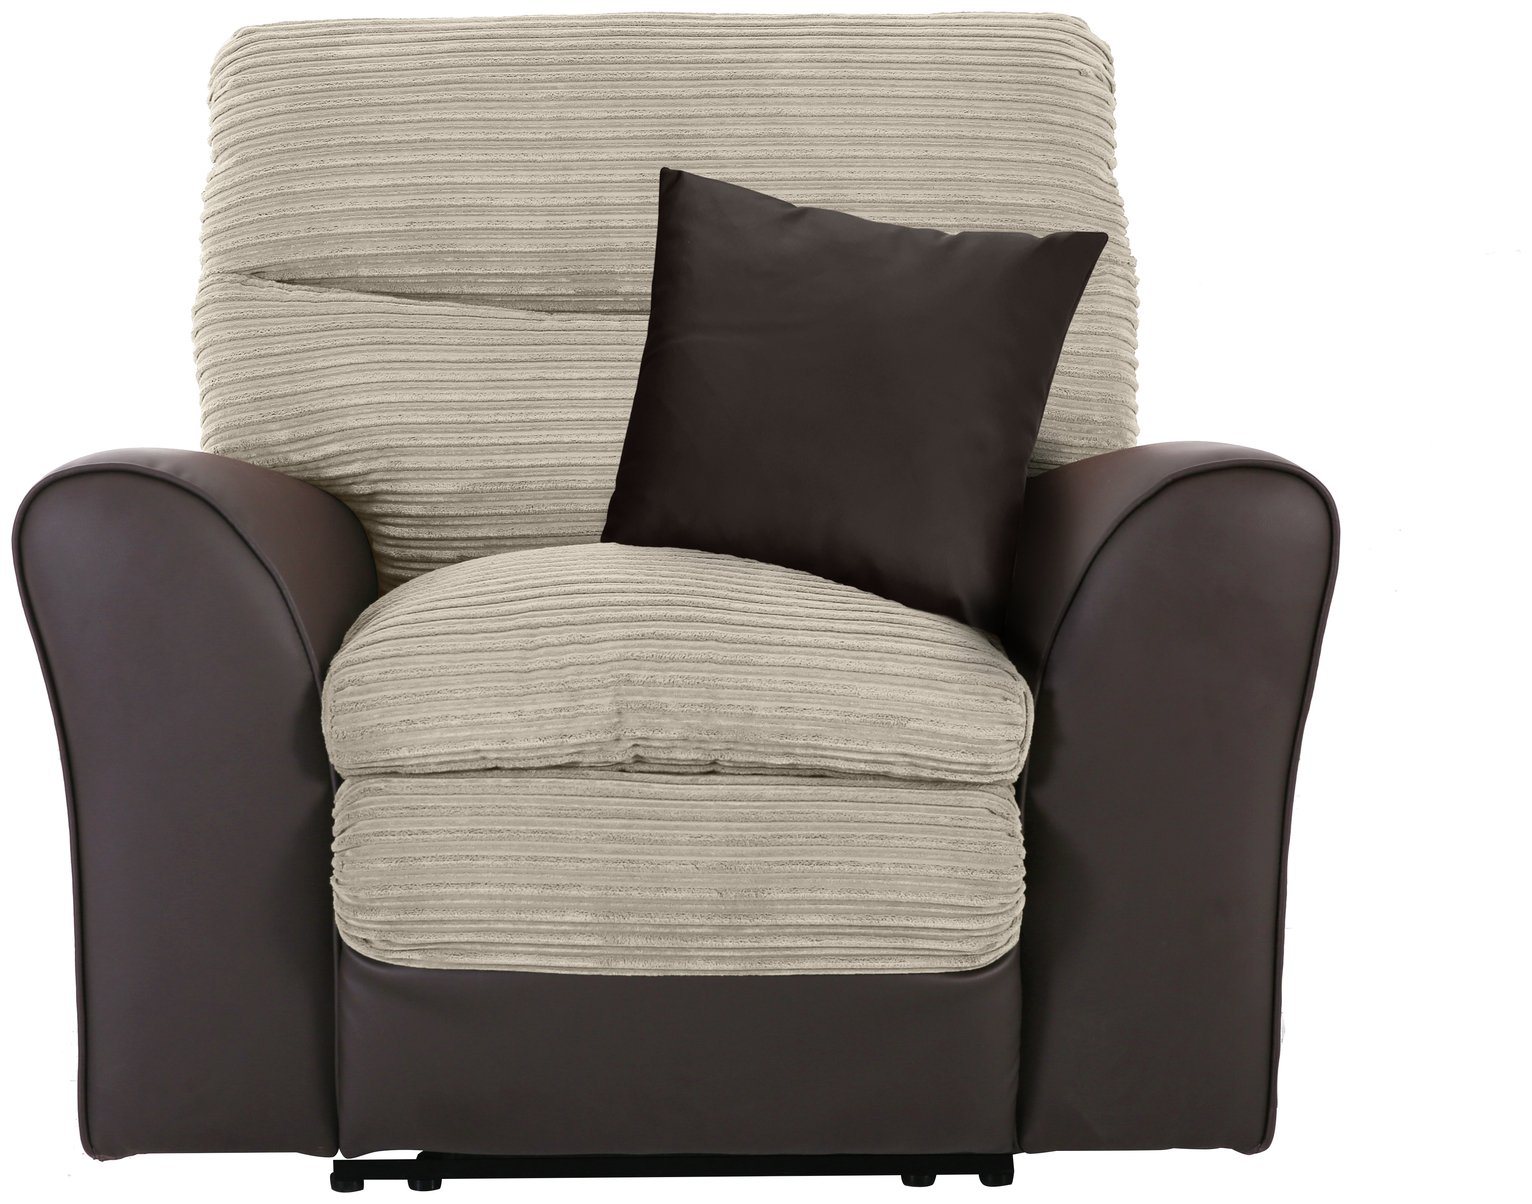 Argos Home Harry Fabric Recliner Chair - Mink